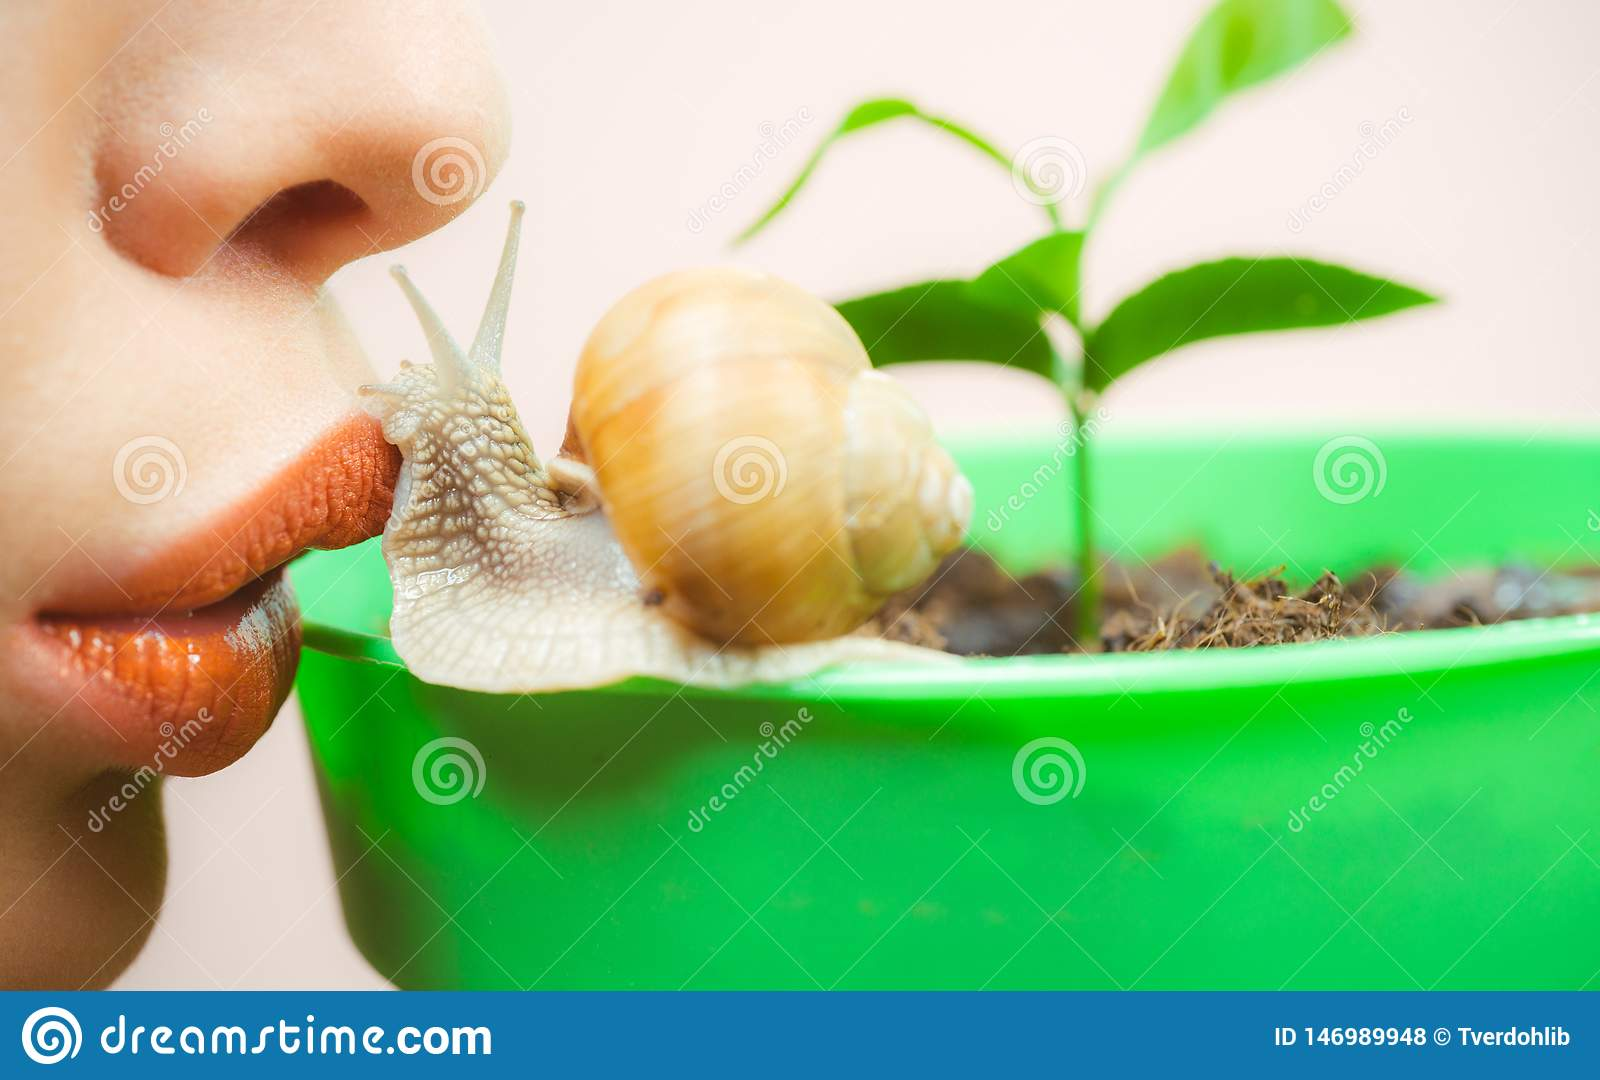 Healing mucus. Having fun with adorable snail. Spa and wellness. Cosmetics and snail mucus. Cosmetology beauty procedure